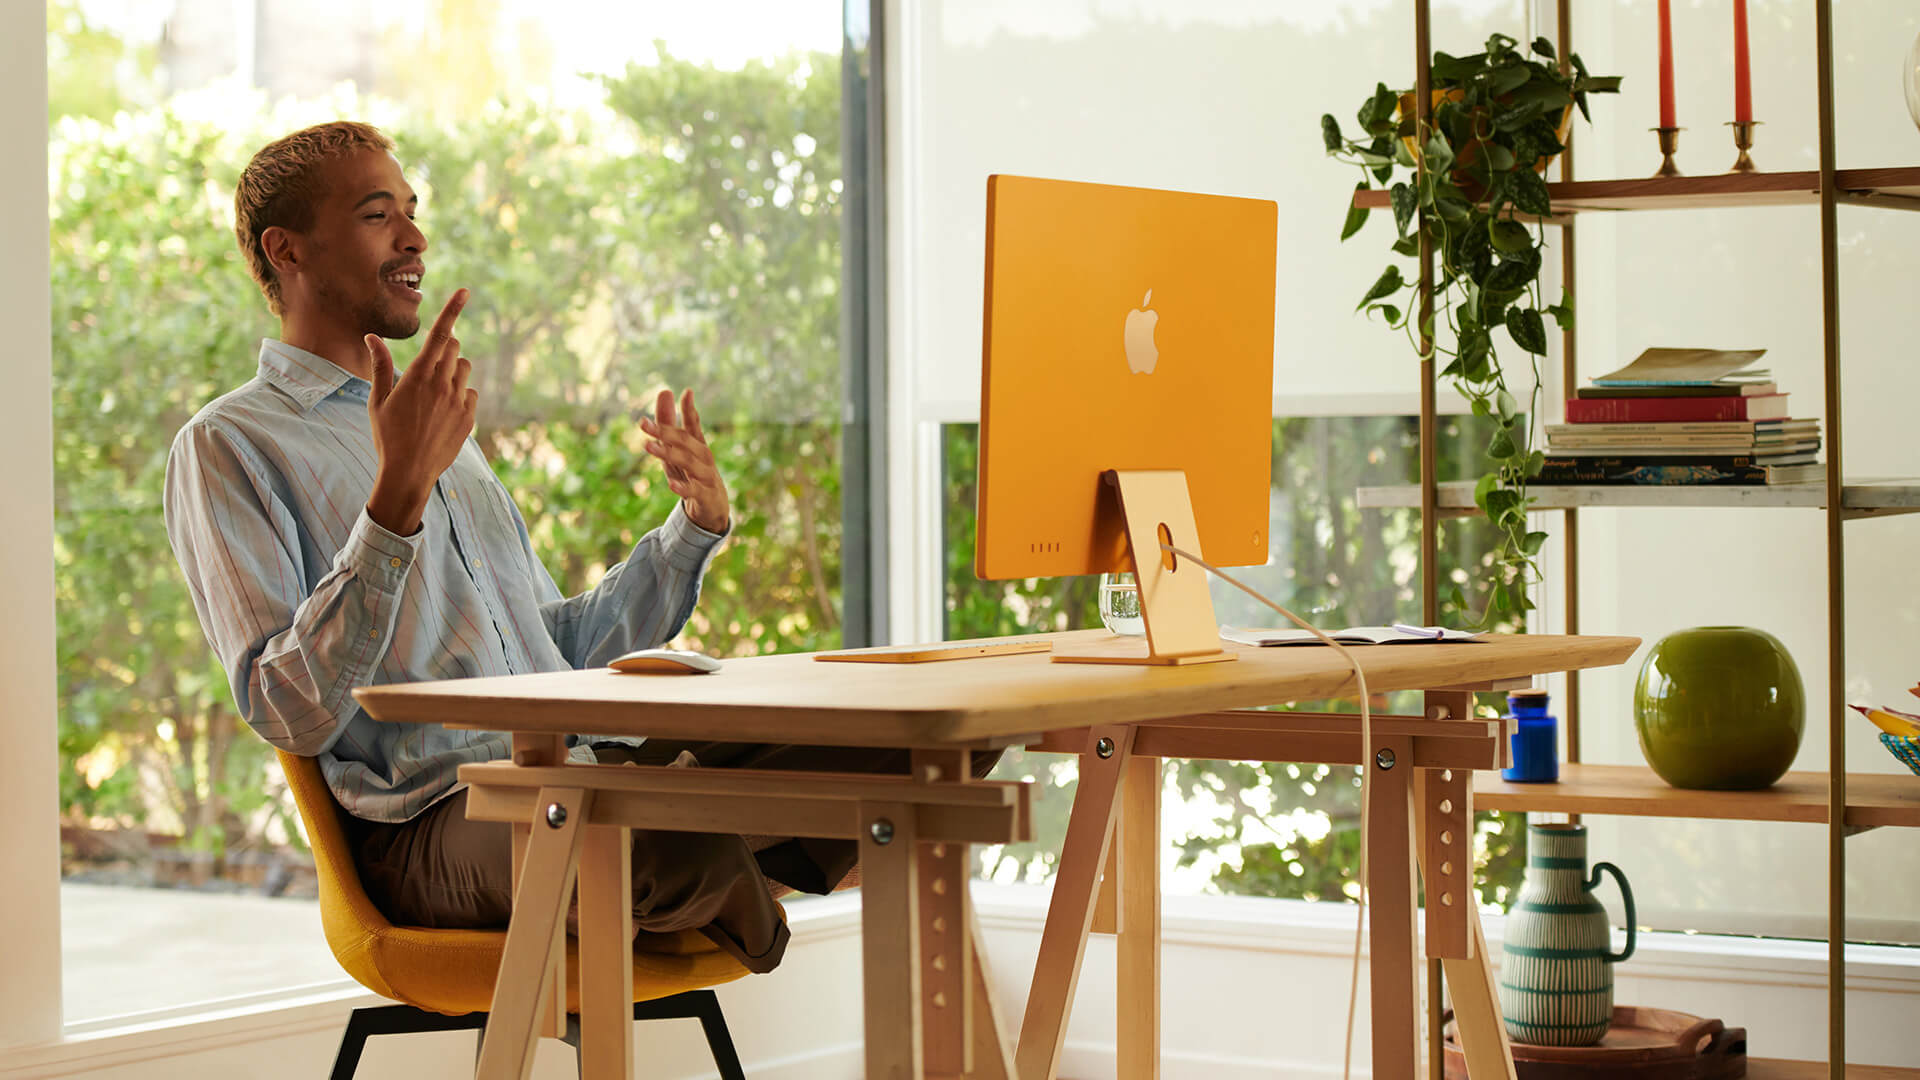 The new model gives users options to match their own style and personalise workspaces | All new iMac by Apple Inc. | STIRworld